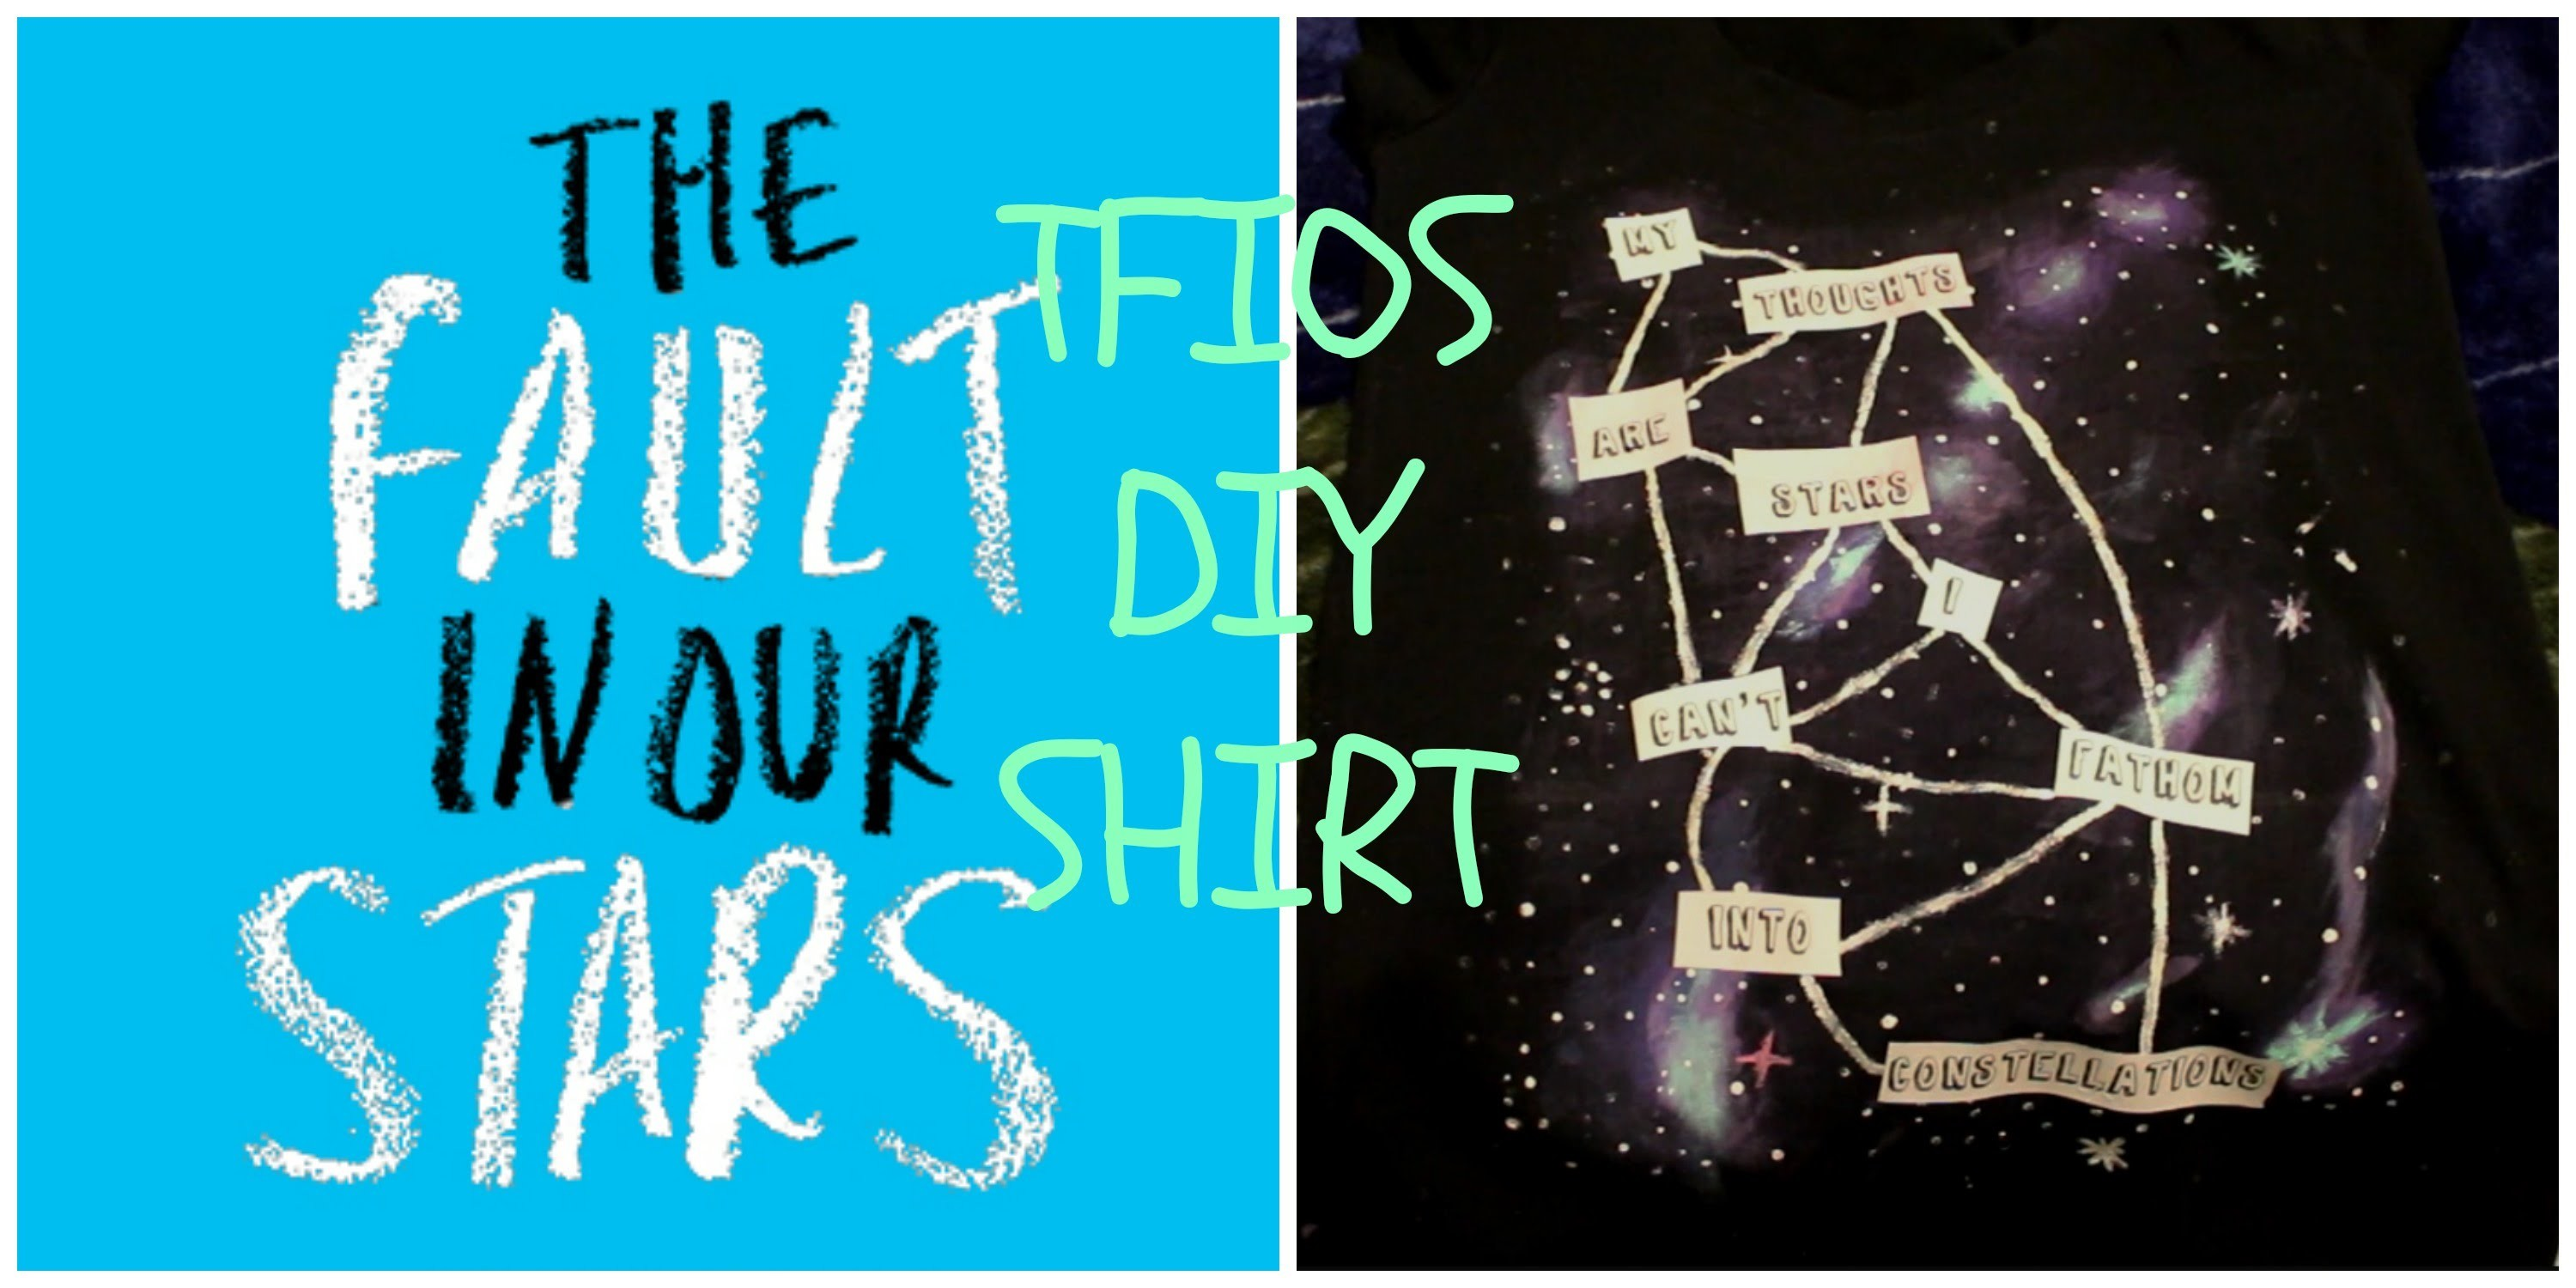 Diy: The Fault in Our Stars Shirt